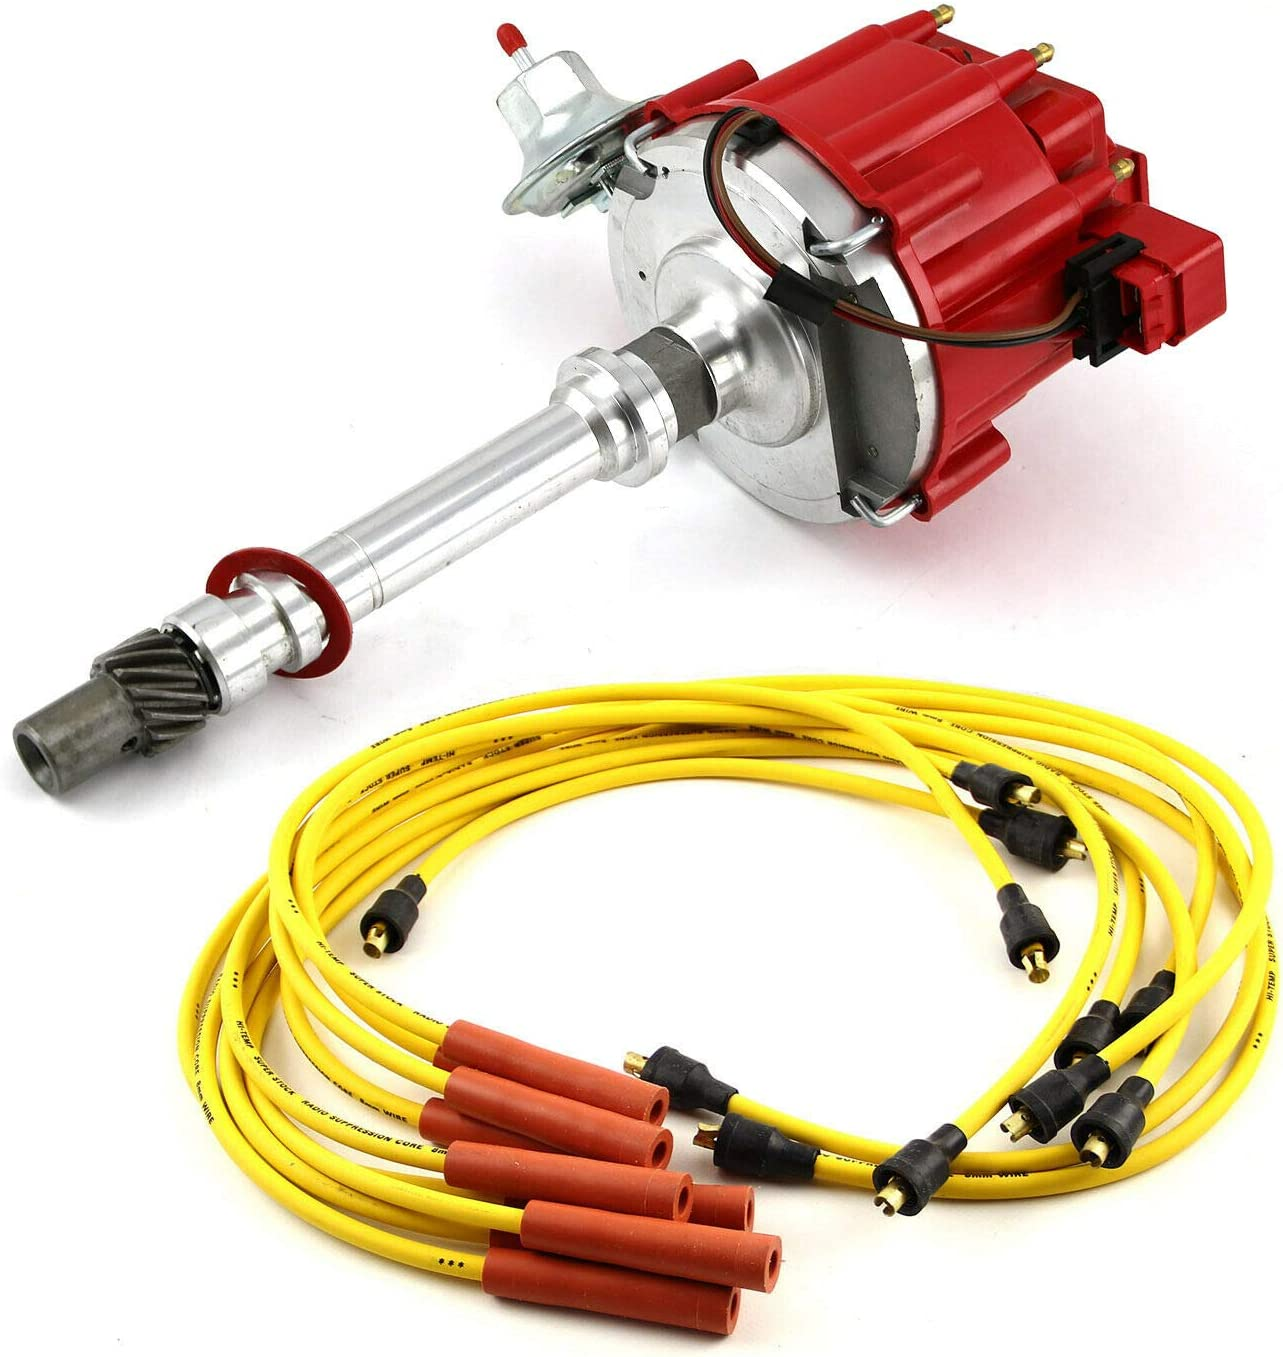 Chevy 350 Ignition Wiring